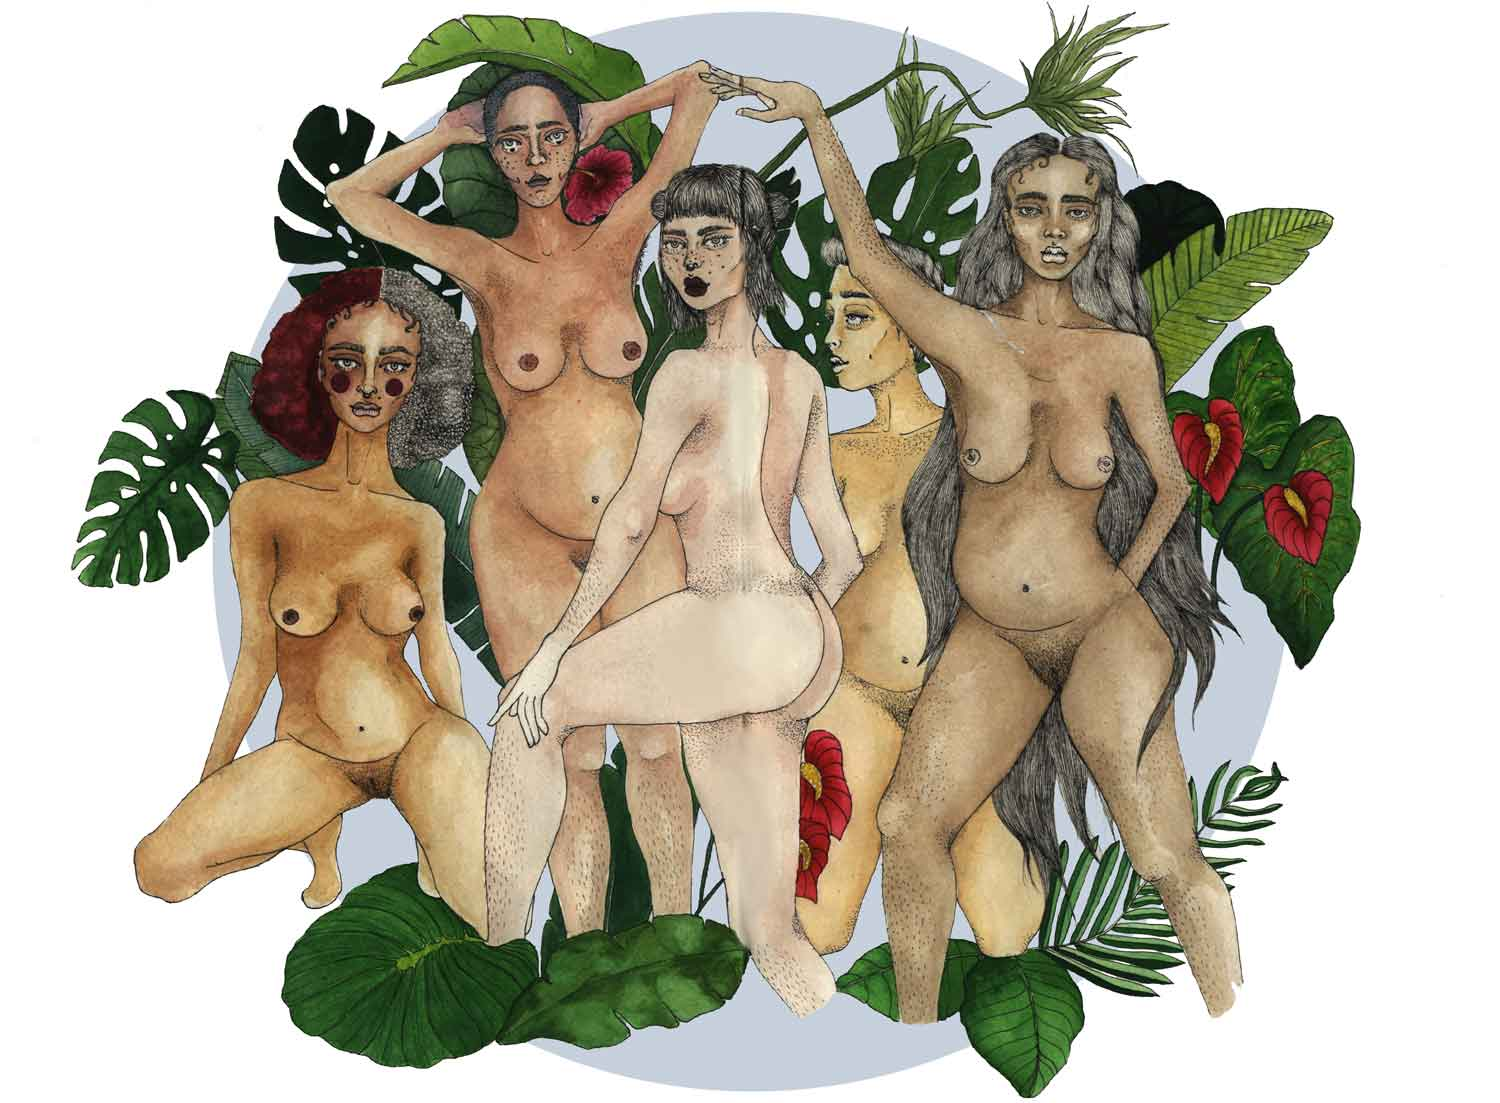 Sarah Naqvi's artwork revealing diversity and embraces the skin that we're born with.